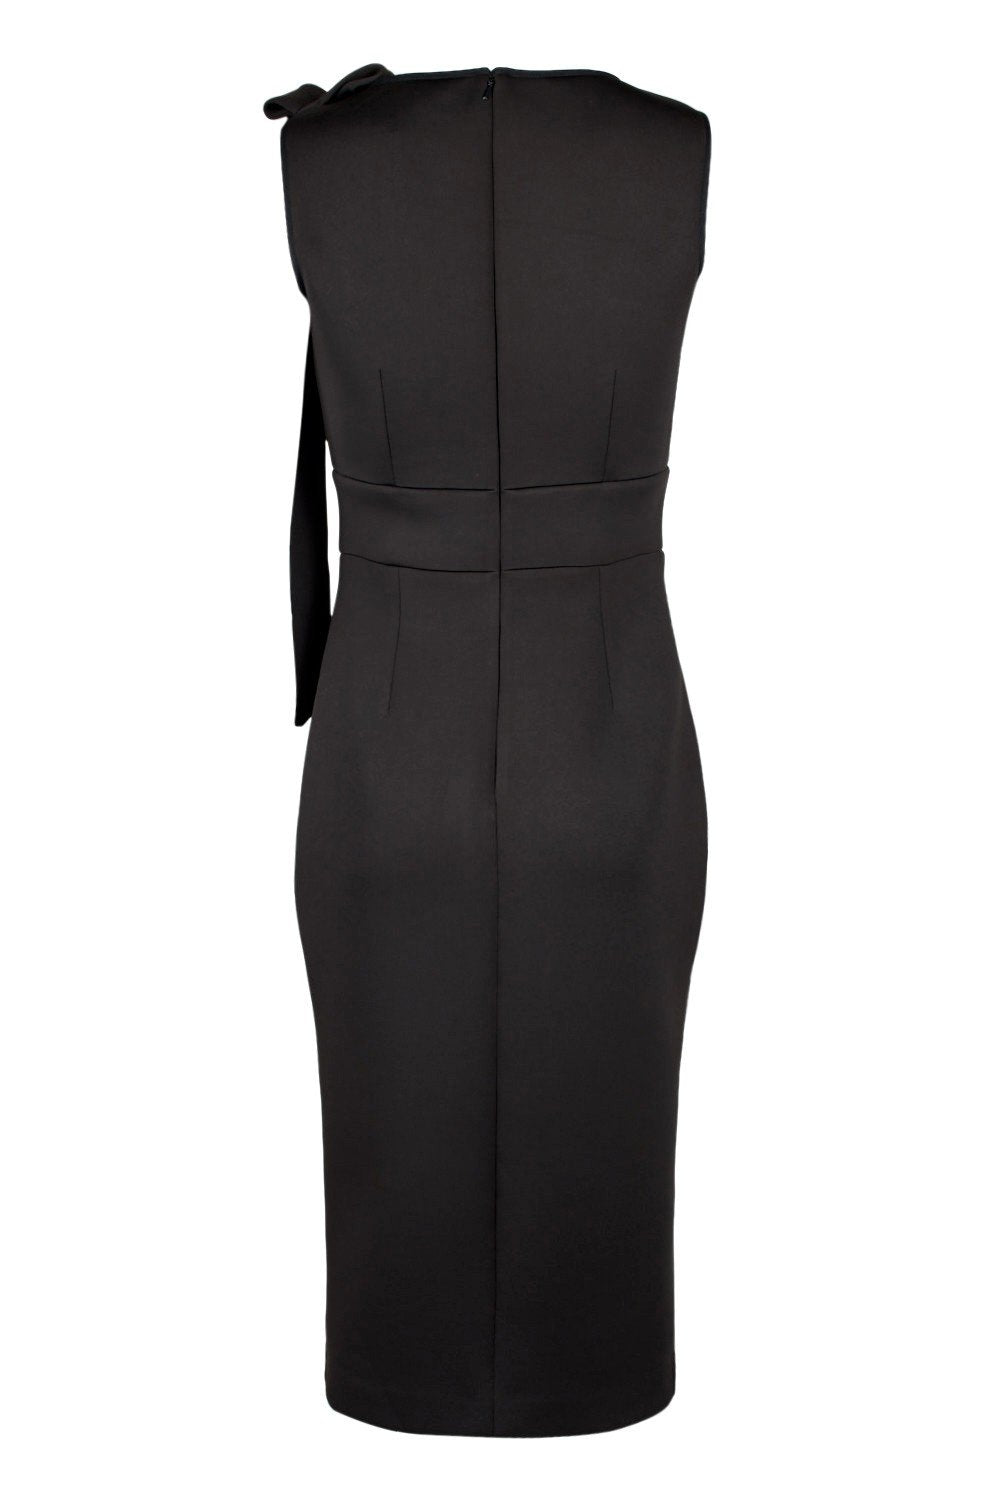 Nero By Jatin Varma - 480069 Tie Shoulder Sheer Front Sheath Dress In Black